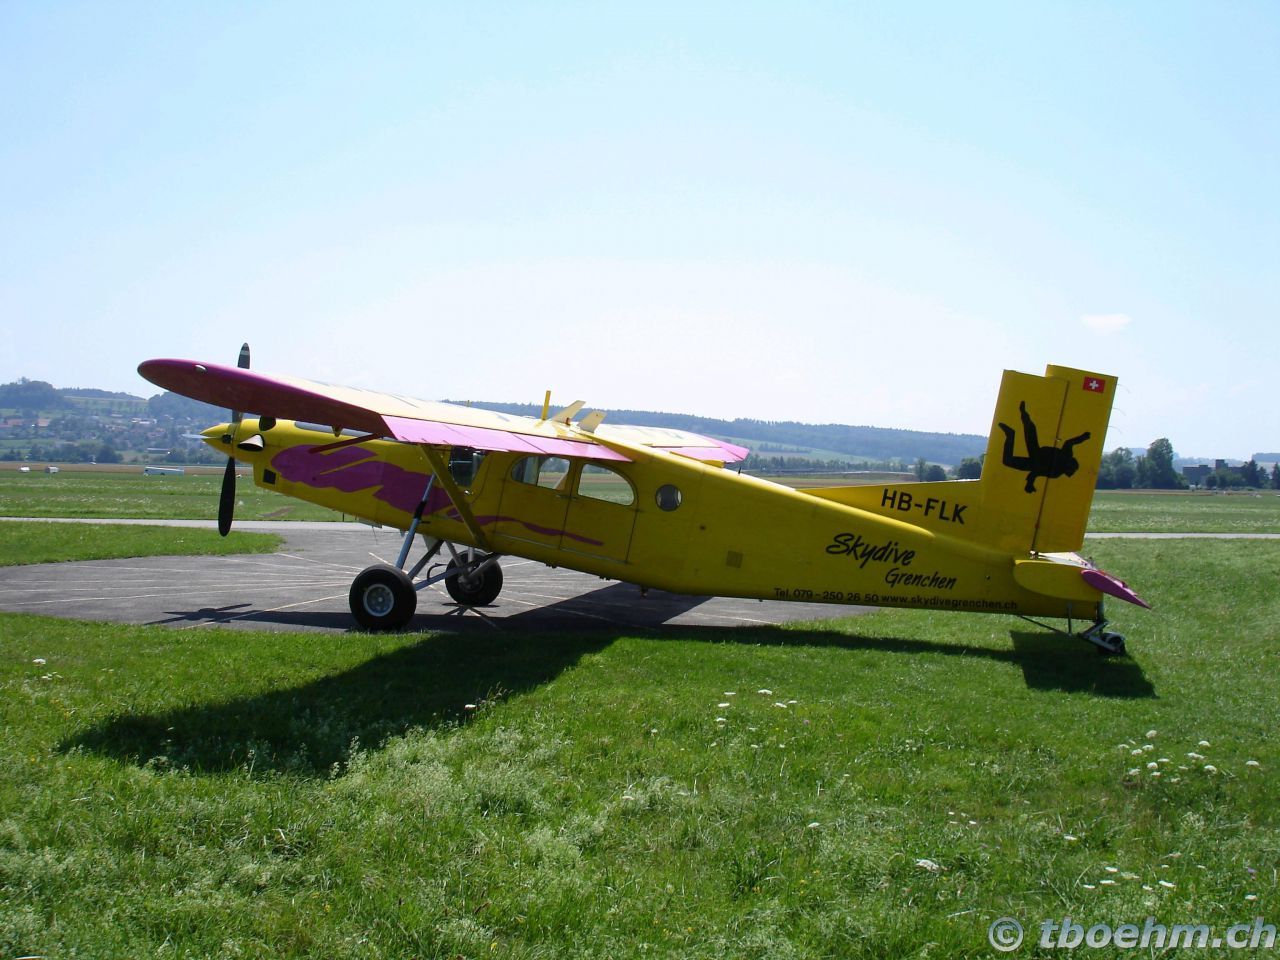 skydive_grenchen_16_07_2006_31_20121125_1685049119